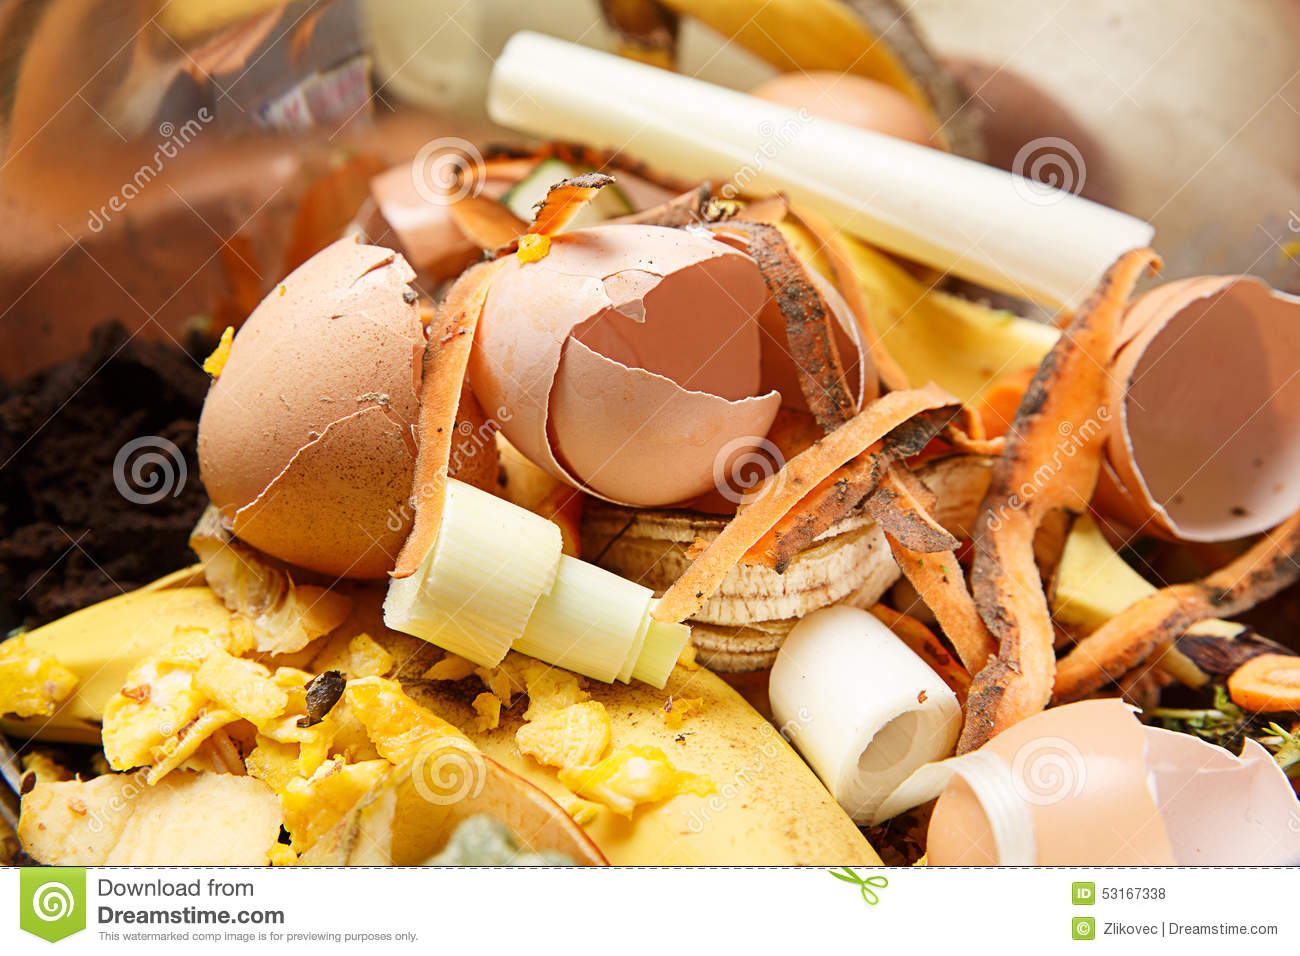 a discussion on leftovers and food waste Food scraps, repourpose leftovers, and reduce food waste 1999 mt read blvd, rochester, ny 14615 585-328-2280 | foodlinknyorg food waste reduction tip march 8.